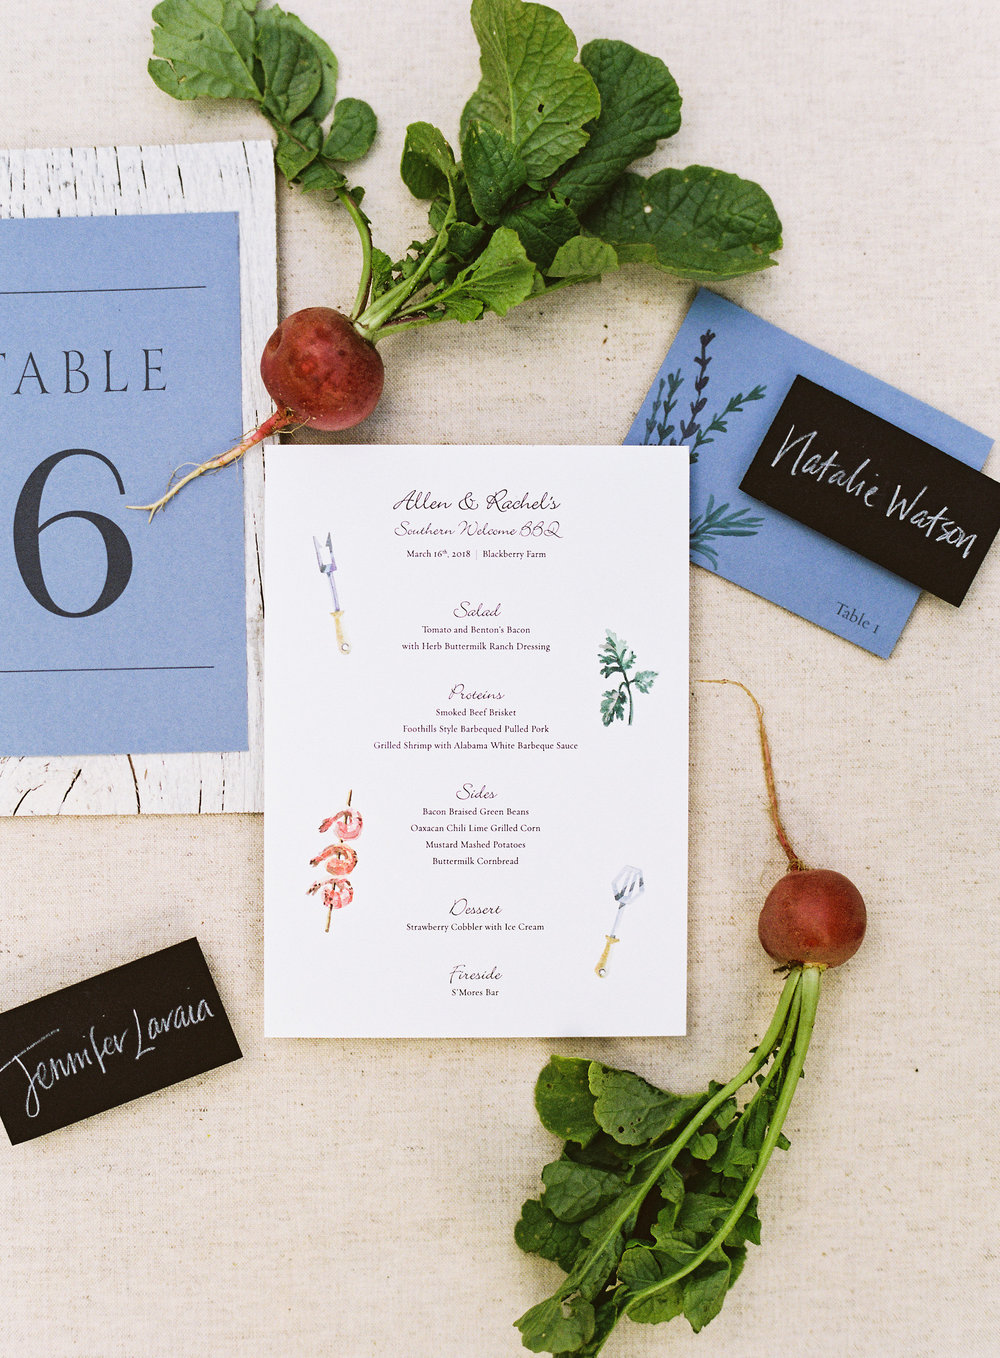 Blackberry Farm Wedding stationery designs | by www.chavelli.com